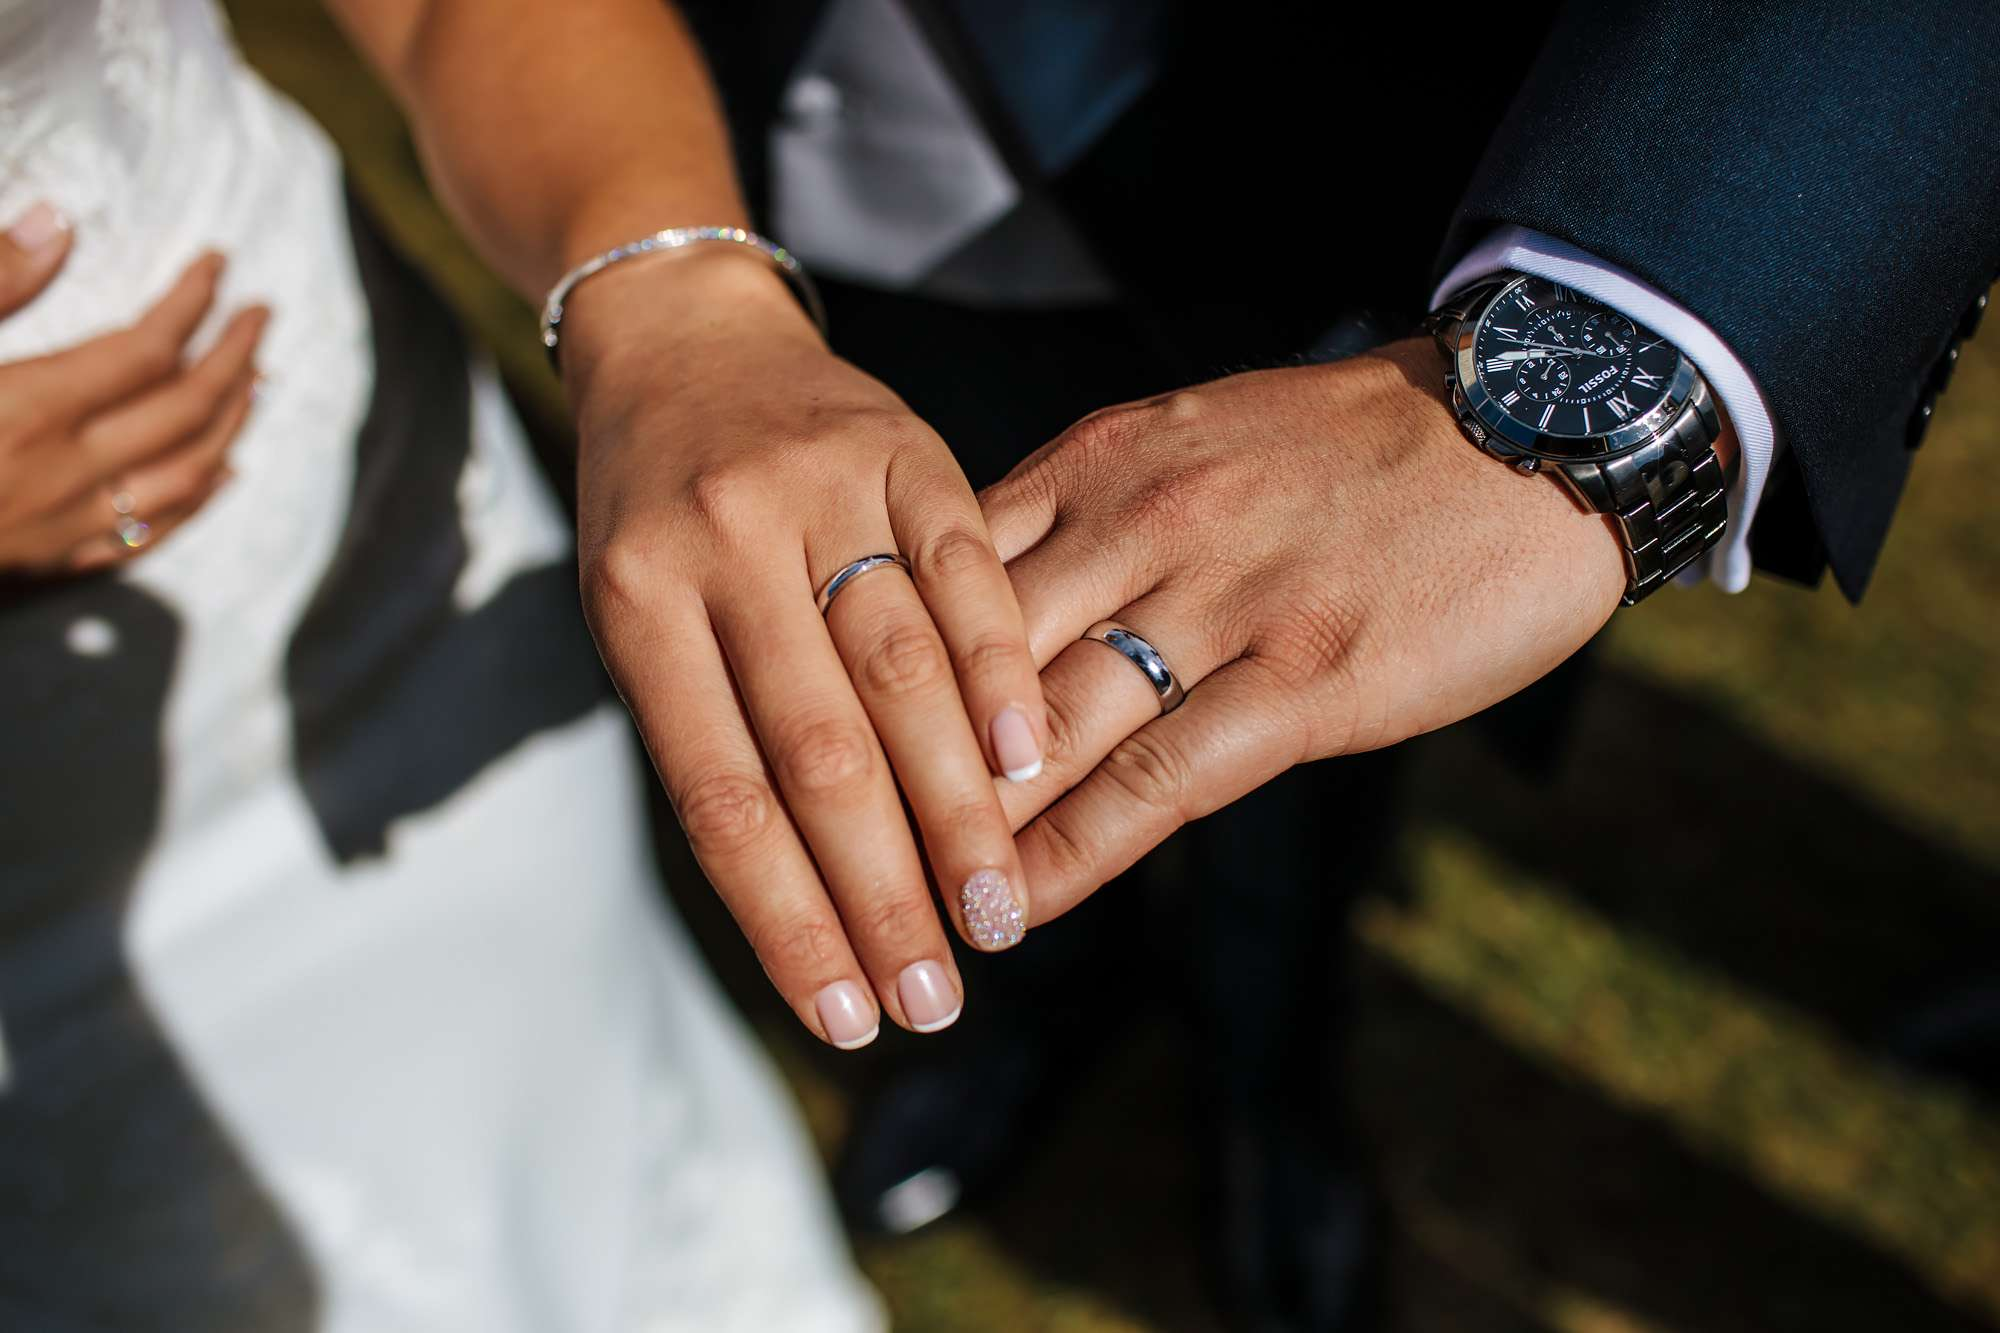 Bride and groom showing off their wedding rings